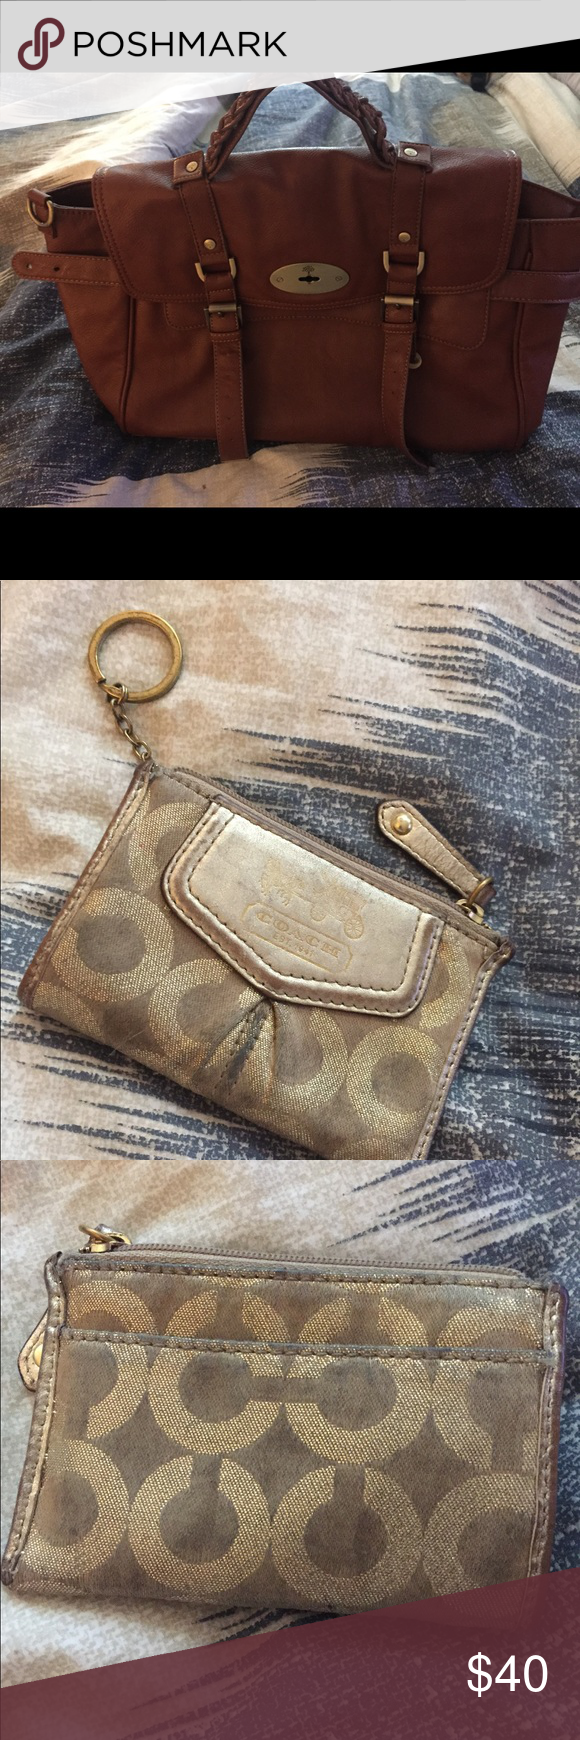 Authentic coach coin purse. Copycat mulberry Authentic coach gold coin purse  and not authentic mulberry combo. Coin purse well used. Gold. Bag hardly  used ... 4762eb4c09b3f